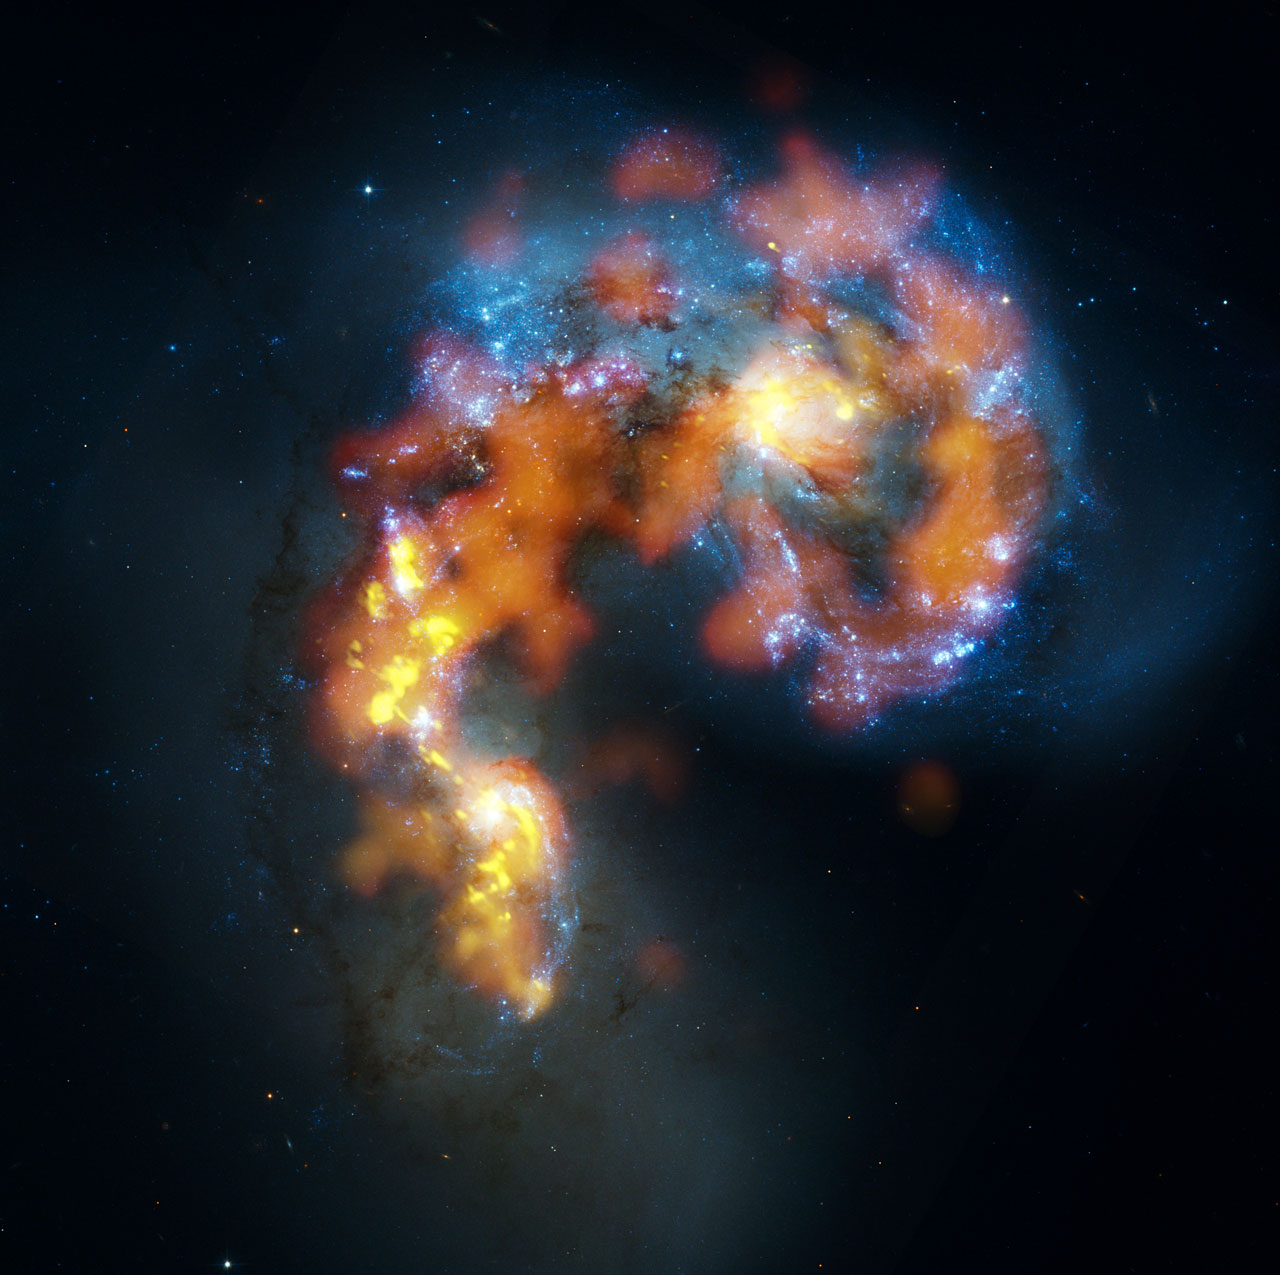 While you can't see dark matter with your eyes, its mass helps in the formation of galaxies.   B. Saxton, (NRAO/AUI/NSF), ALMA (ESO/NAOJ/NRAO). Visible light image: the NASA/ESA Hubble Space Telescope  (CC BY 4.0)